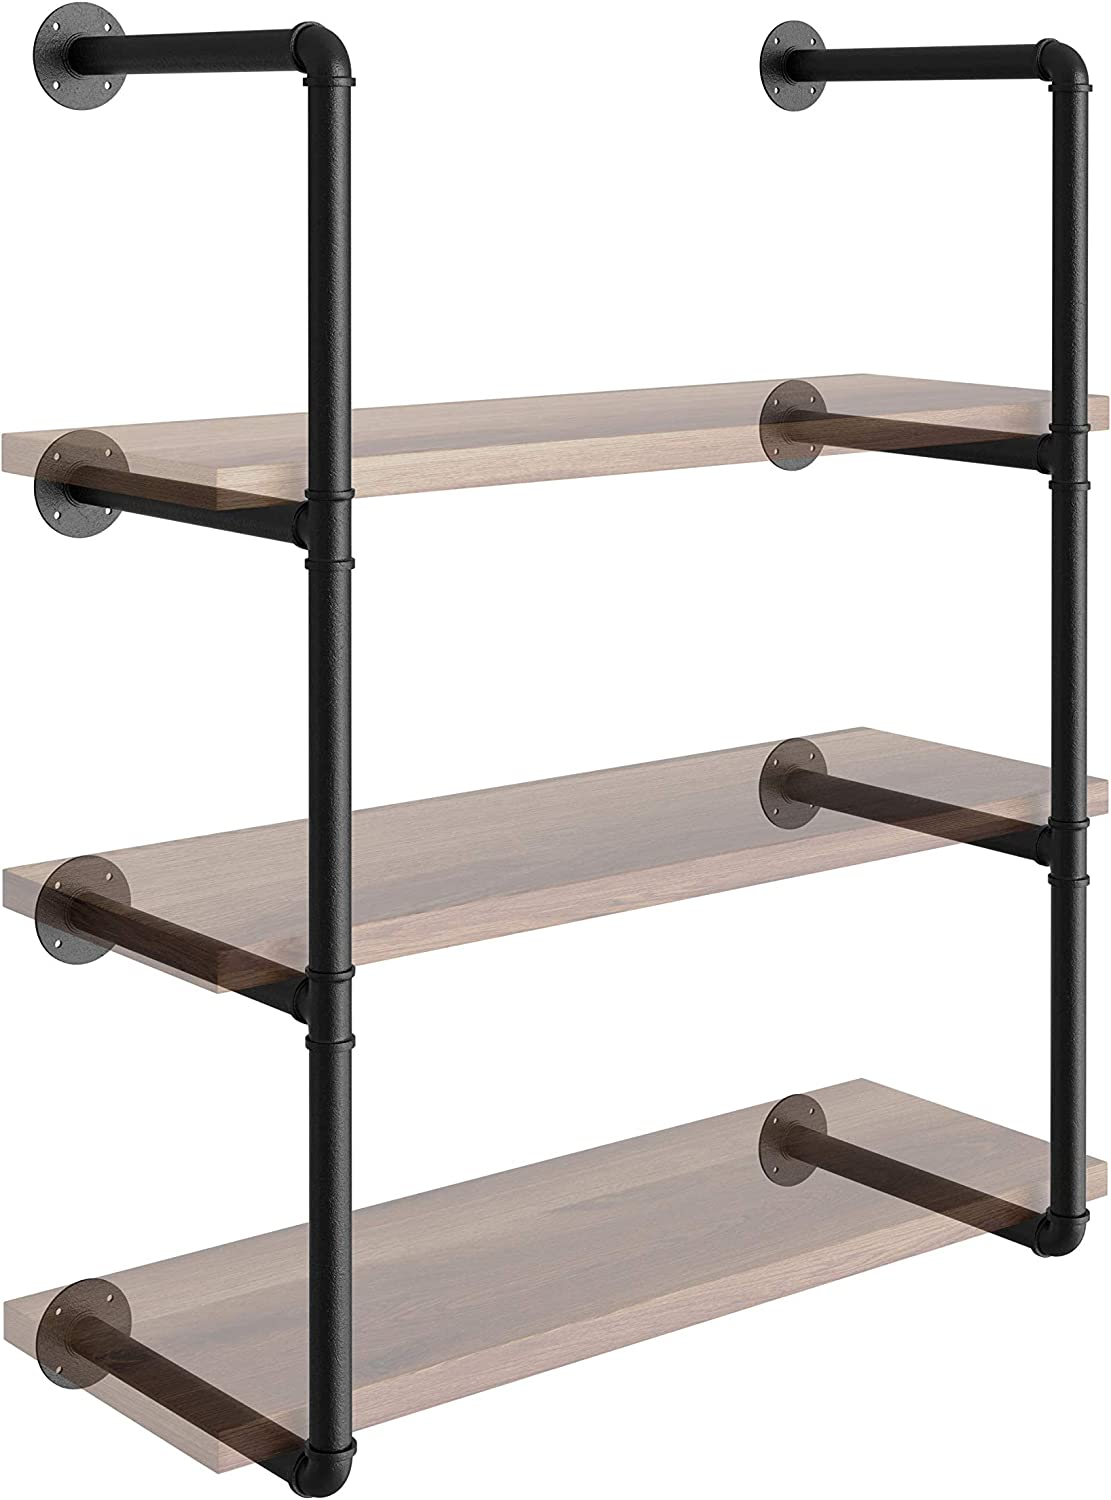 Industrial Pipe Shelving Wall Mount - 3 in 1 DIY Farmhouse Decor Pipe Shelf Brackets - Floating Shelves for Wall Vintage Room Kitchen - Black Pipe Shelves (42